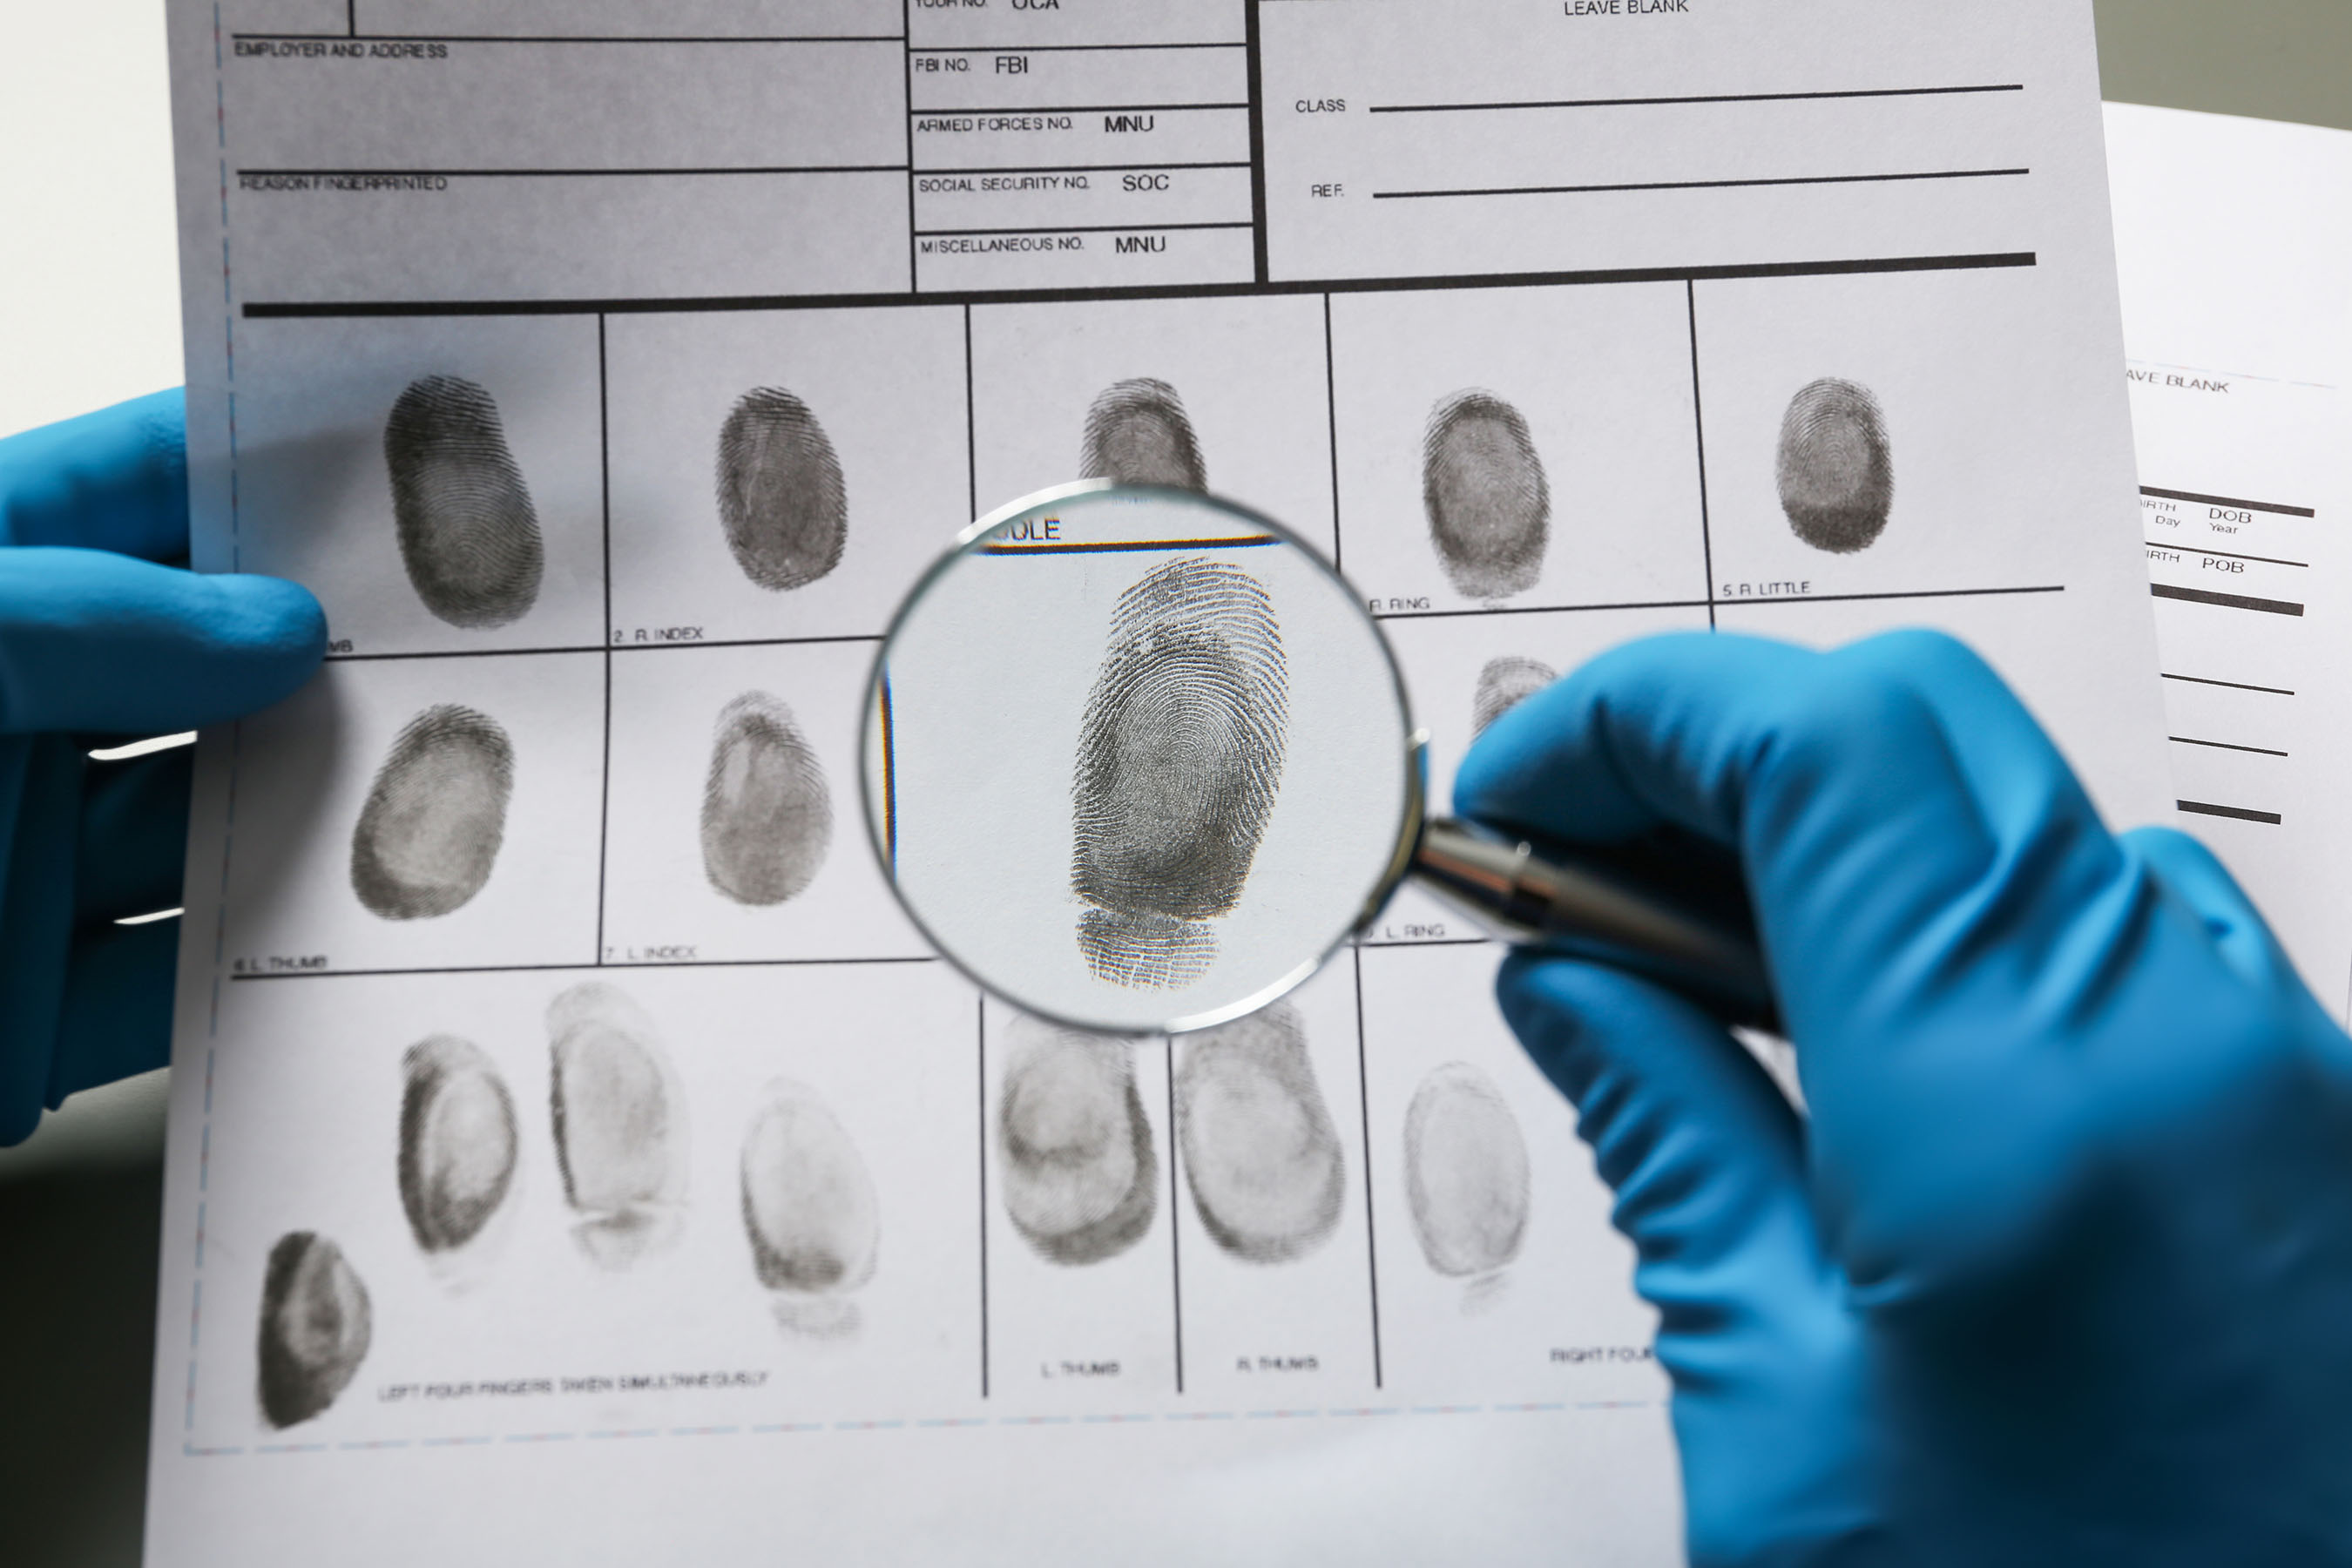 Fingerprints with magnifying glass, closeup